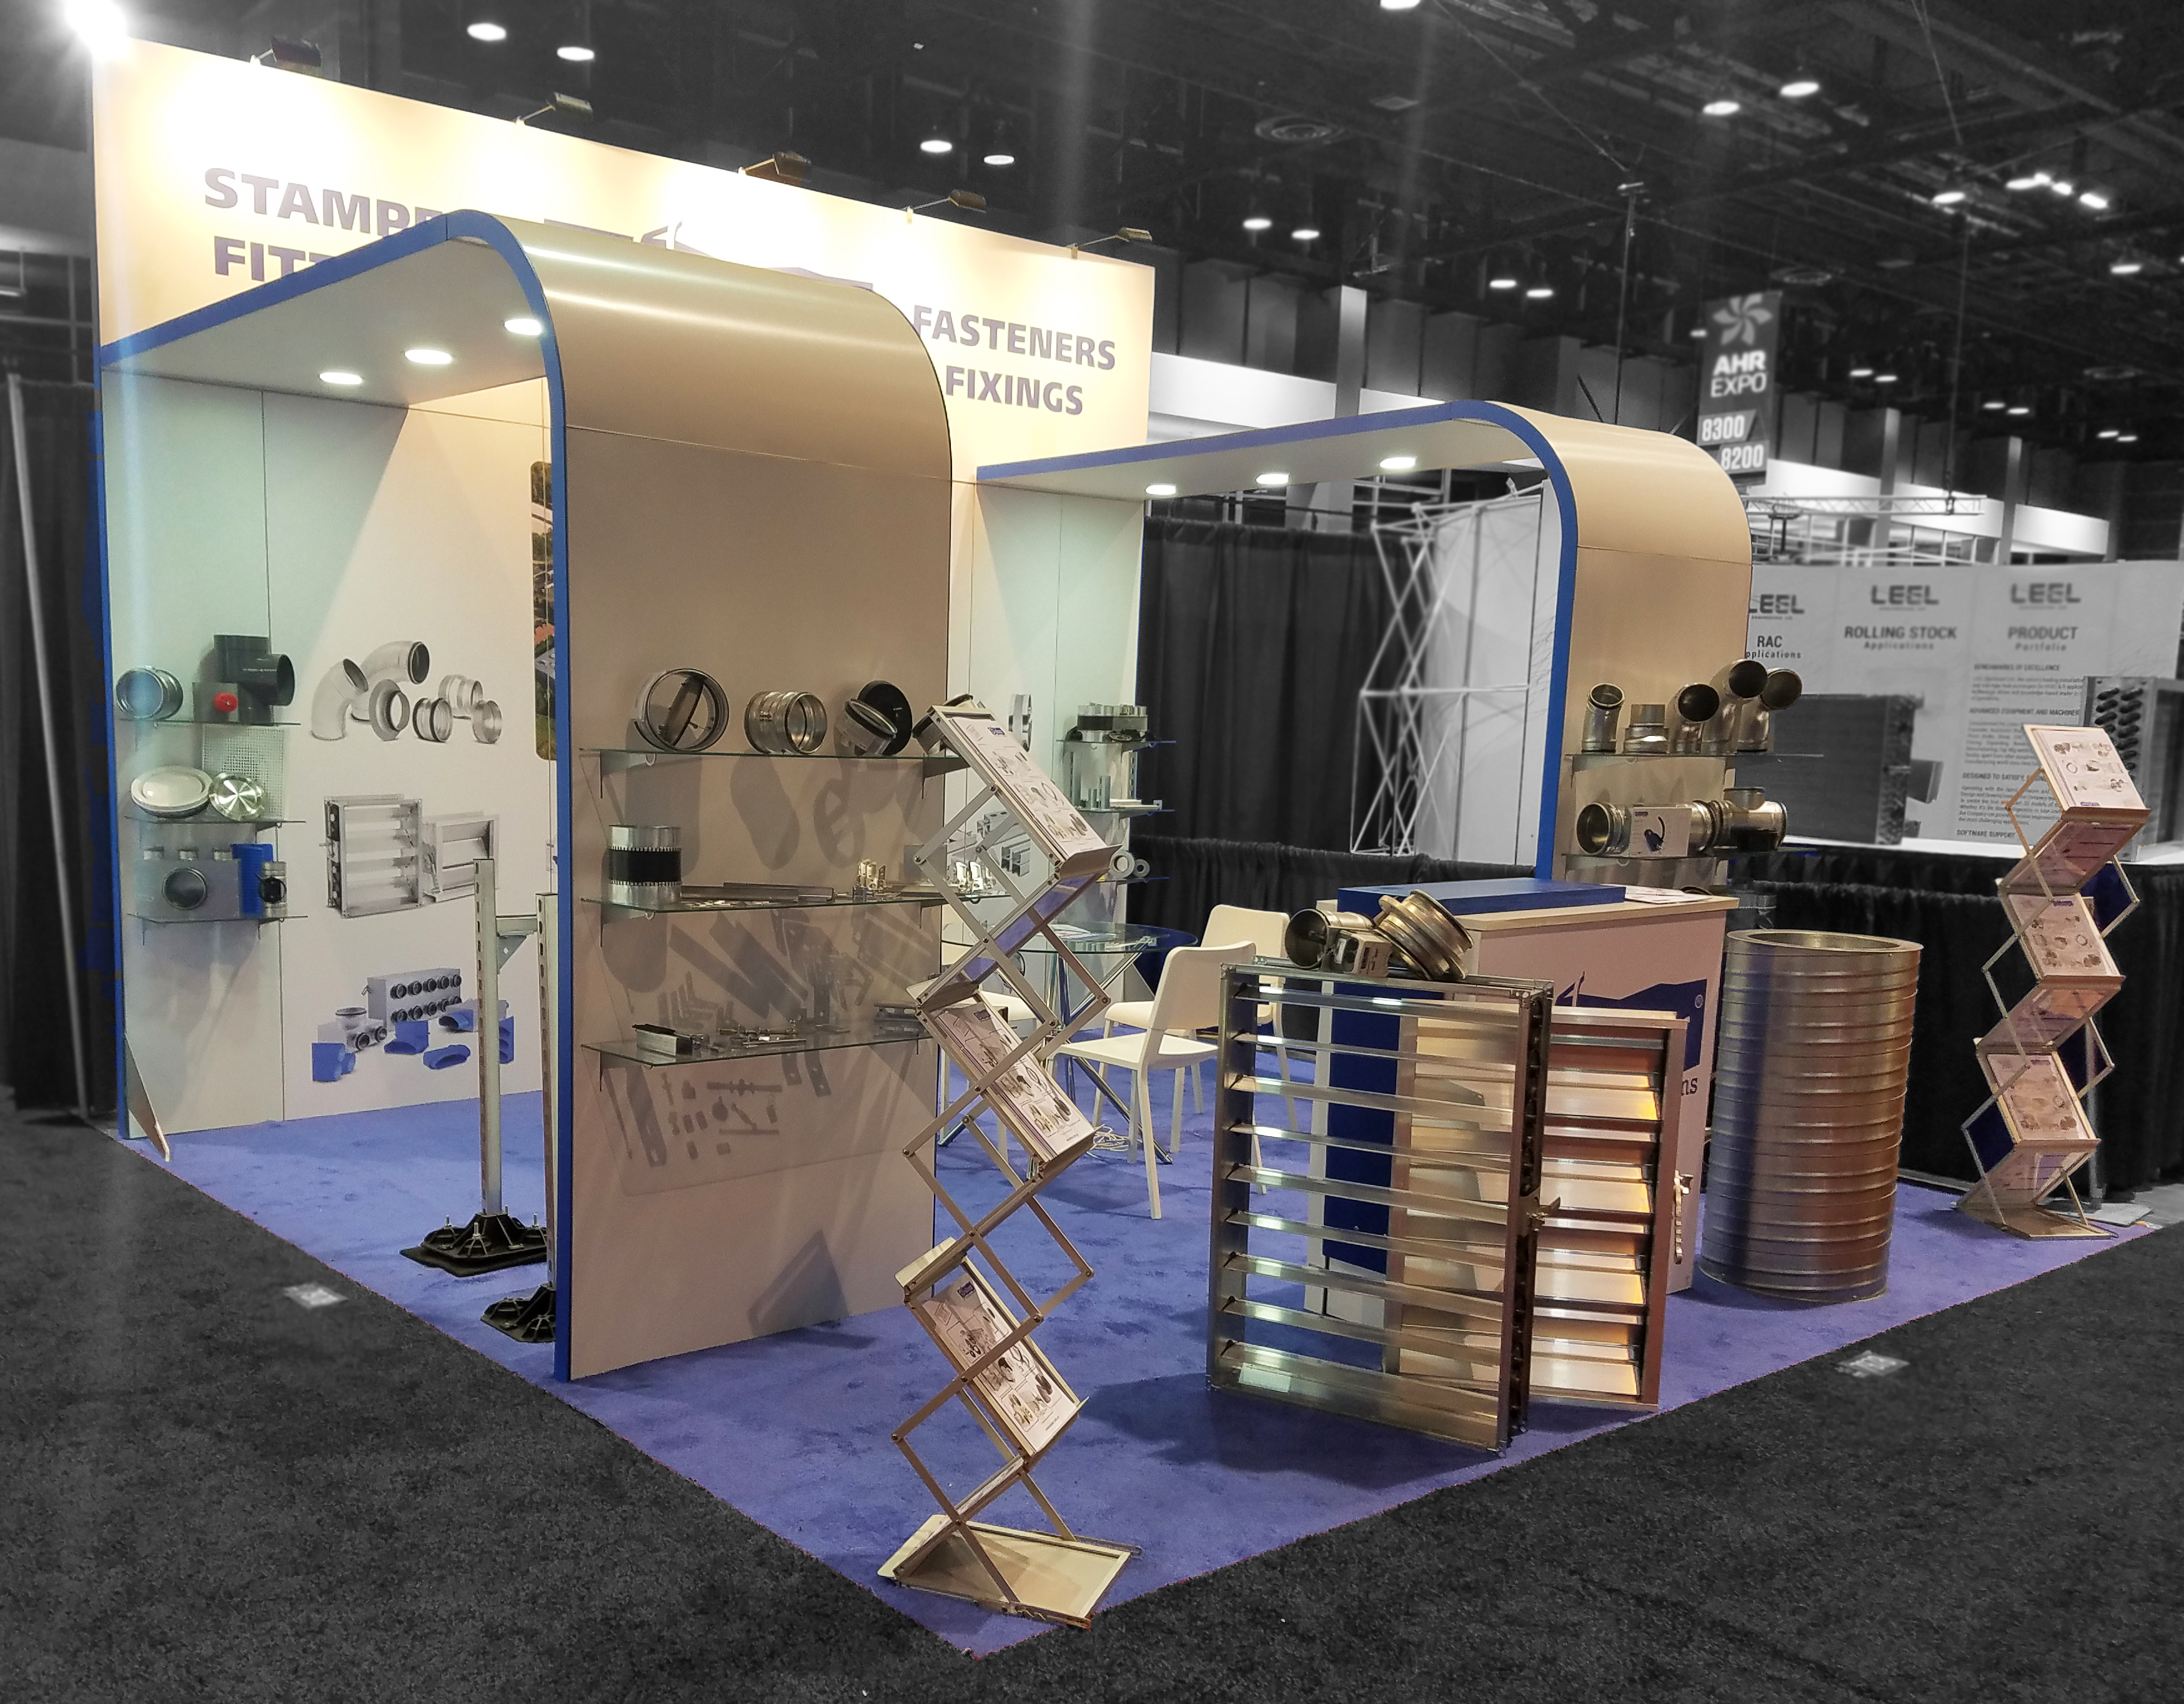 Expo Exhibition Stands Quotes : Custom exhibition stands sydney expo display stands exhibition